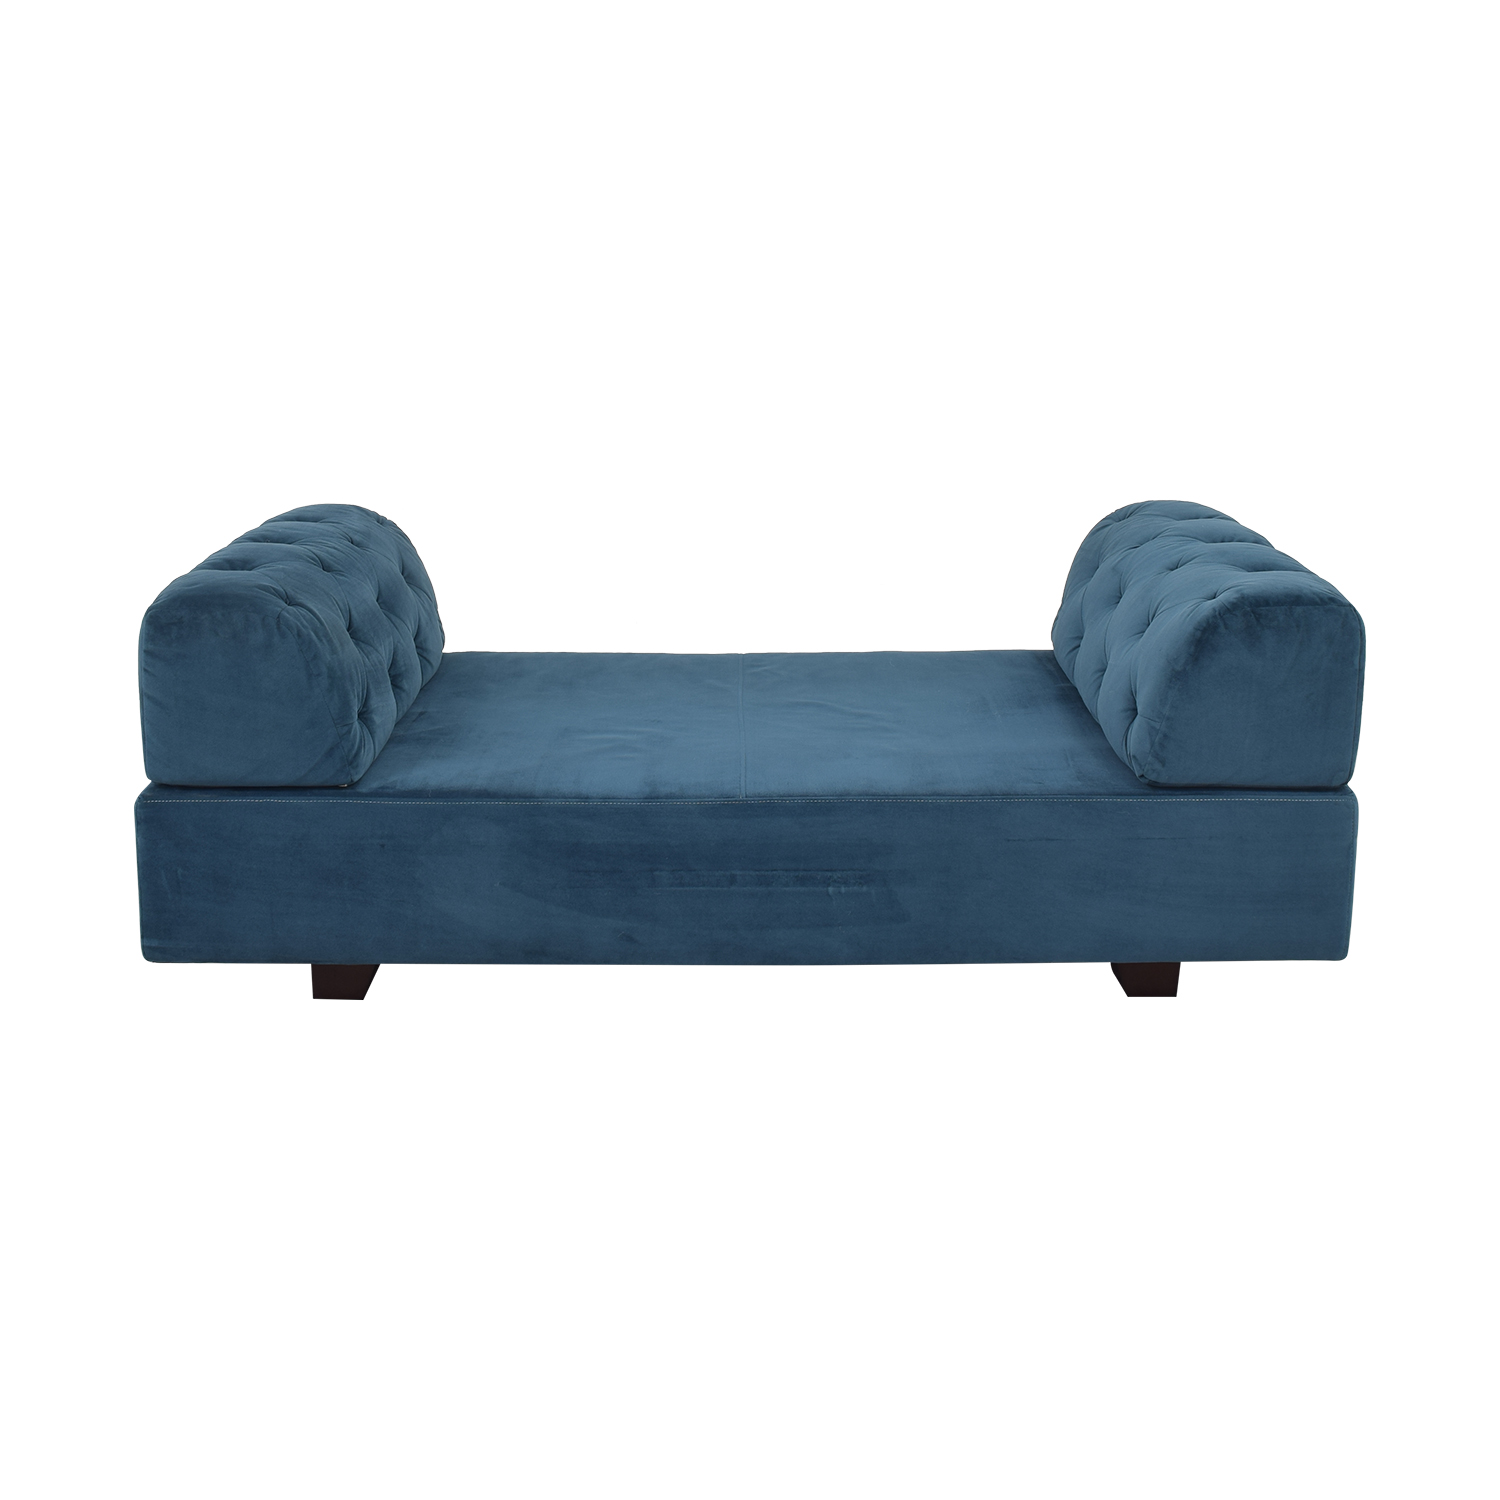 West Elm West Elm Tillary Chaise Lounge coupon